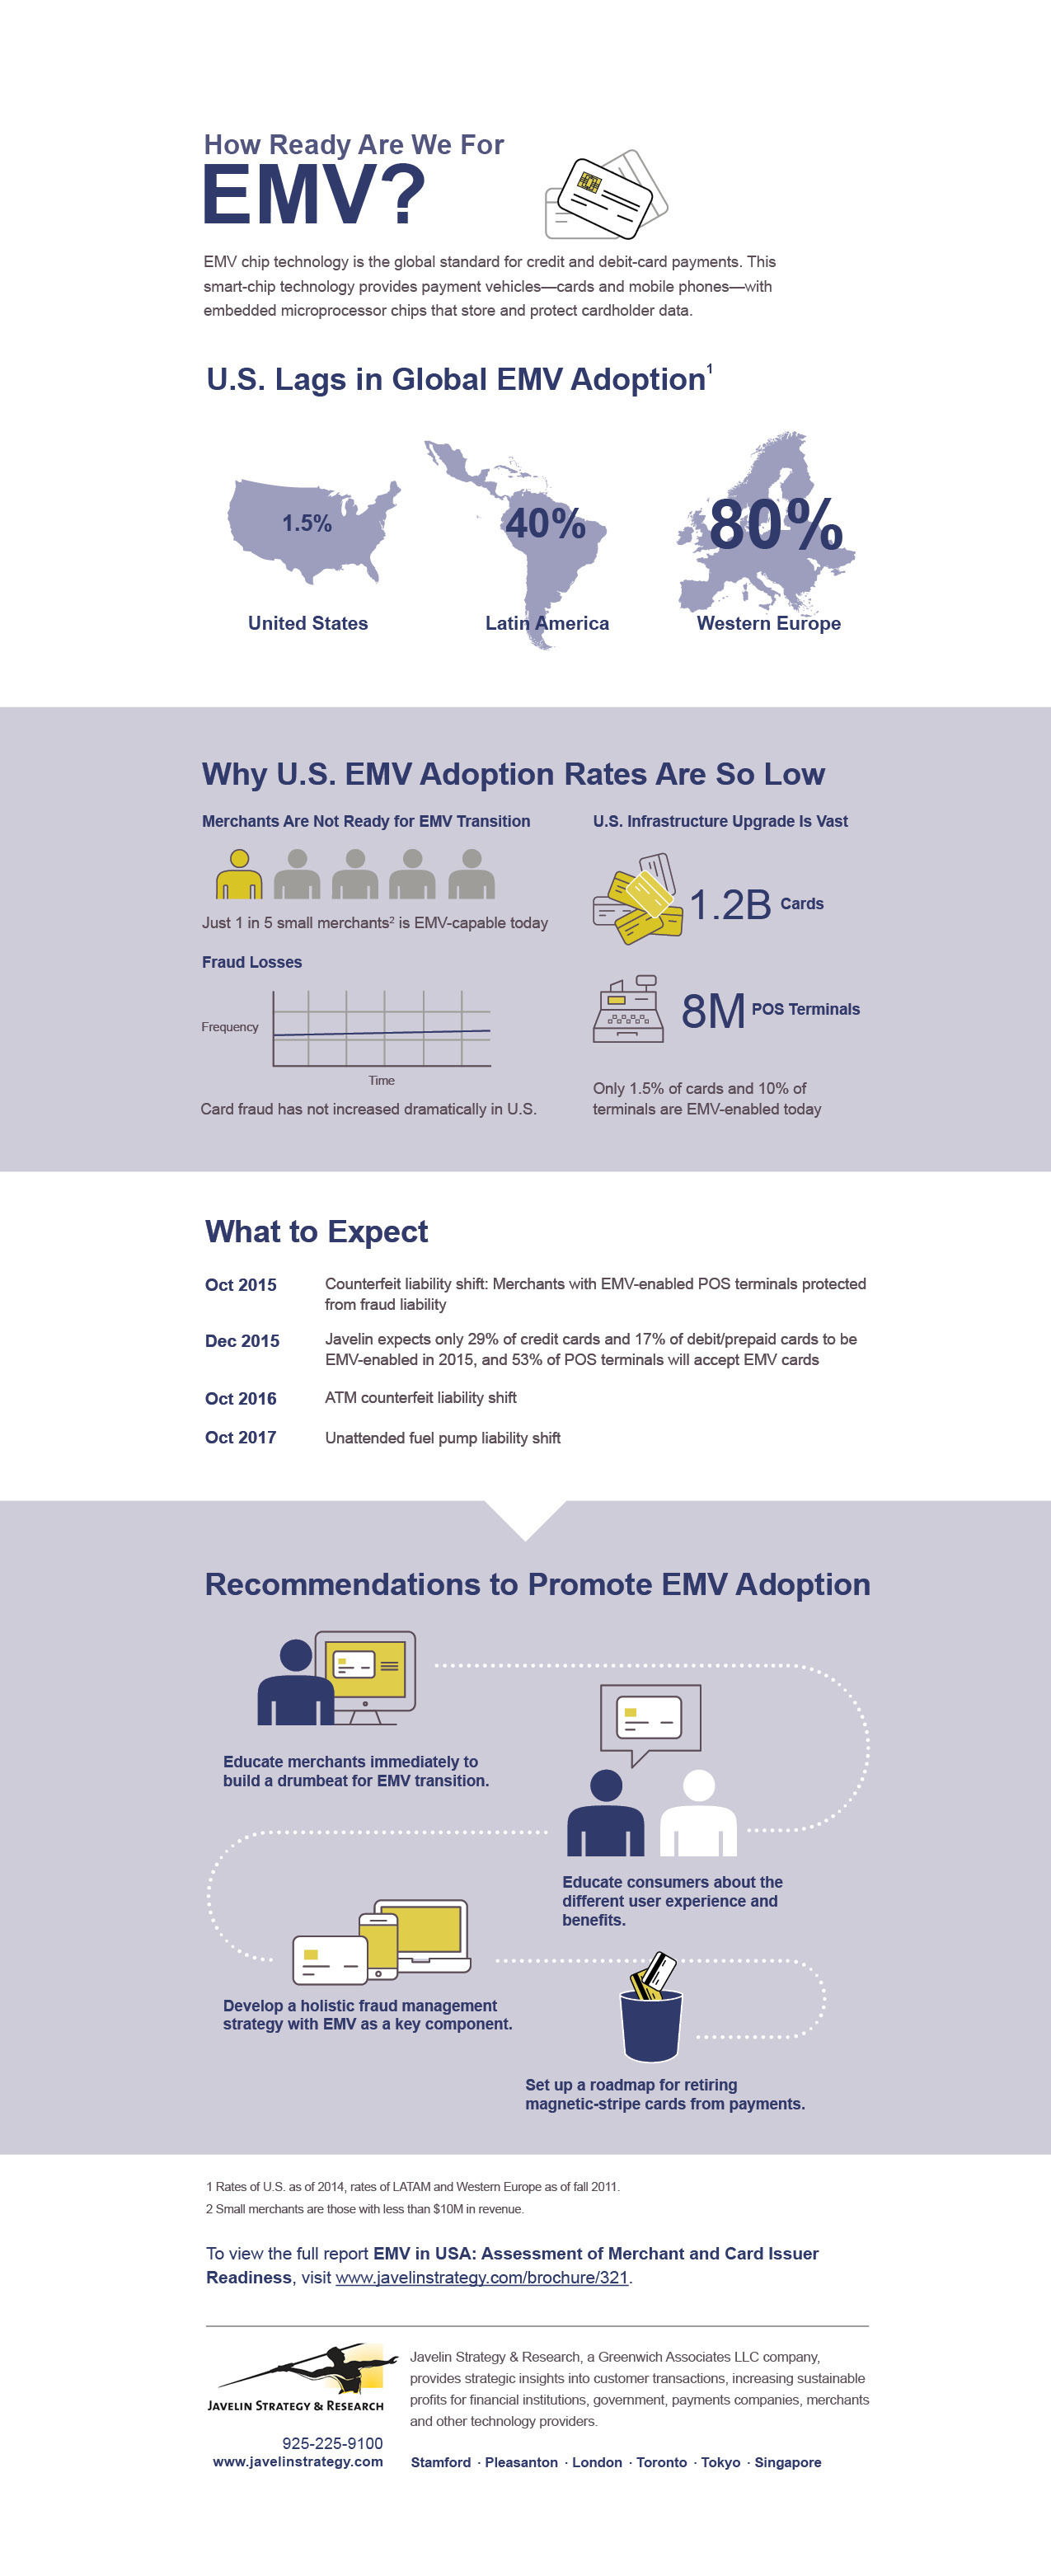 """Javelin Strategy & Research released """"EMV in USA: Assessment of Merchant and Card Issuer Readiness"""" report, which assesses the current state of merchant and issuer readiness to provide a cohesive view of where the industry stands today for issuers and merchants. (Graphic: Business Wire)"""